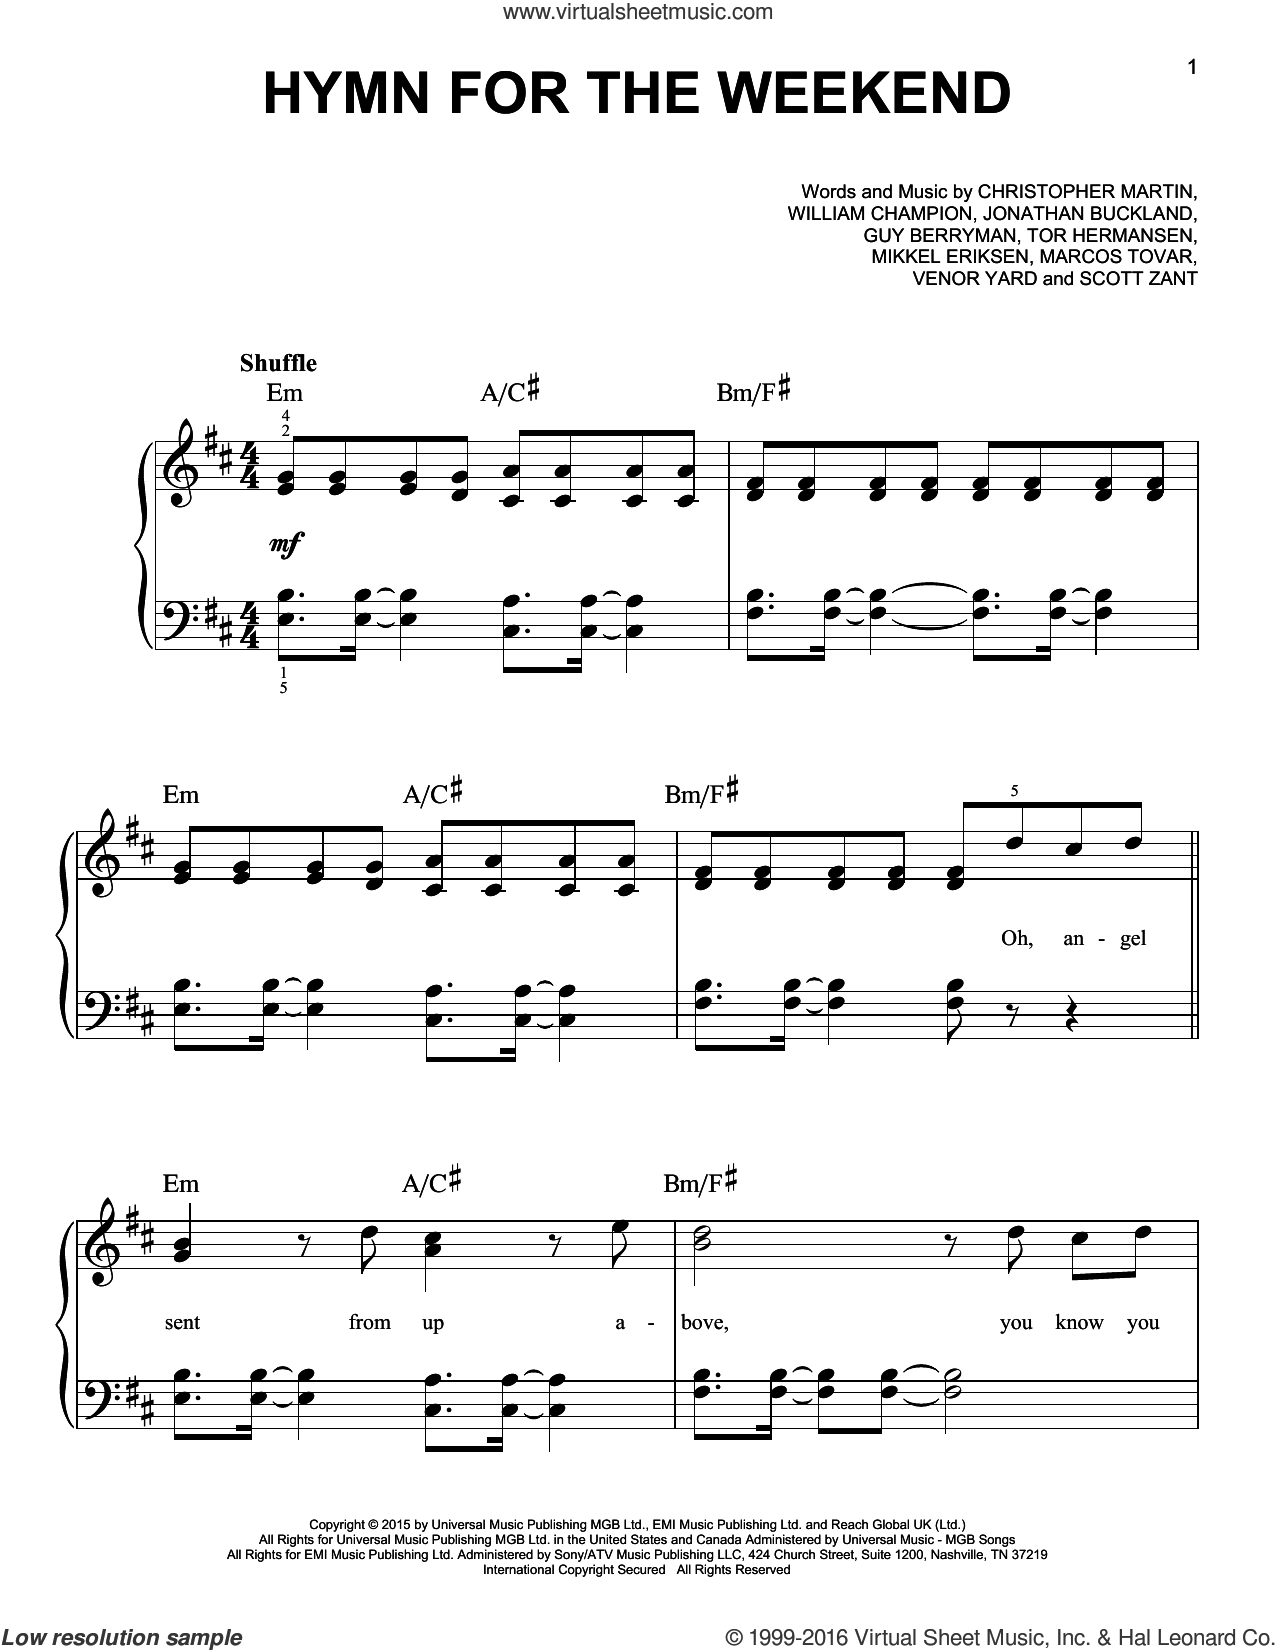 Hymn For The Weekend sheet music for piano solo by Coldplay, Christopher Martin, Guy Berryman, Jonathan Buckland, Marcos Tovar, Mikkel Eriksen, Scott Zant, Tor Erik Hermansen, Venar Yard and William Champion, easy skill level